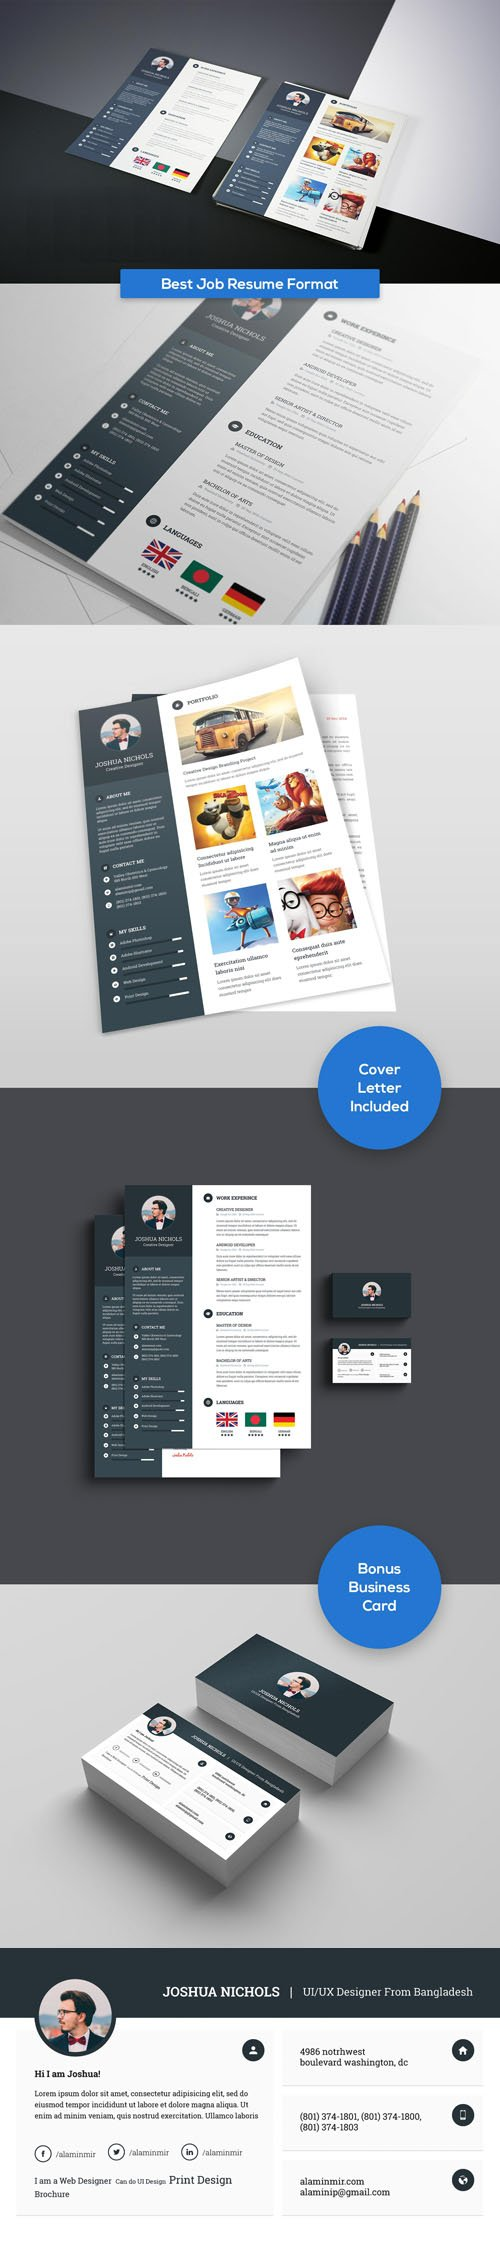 Best Job Resume Format PSD Templates with Business Card